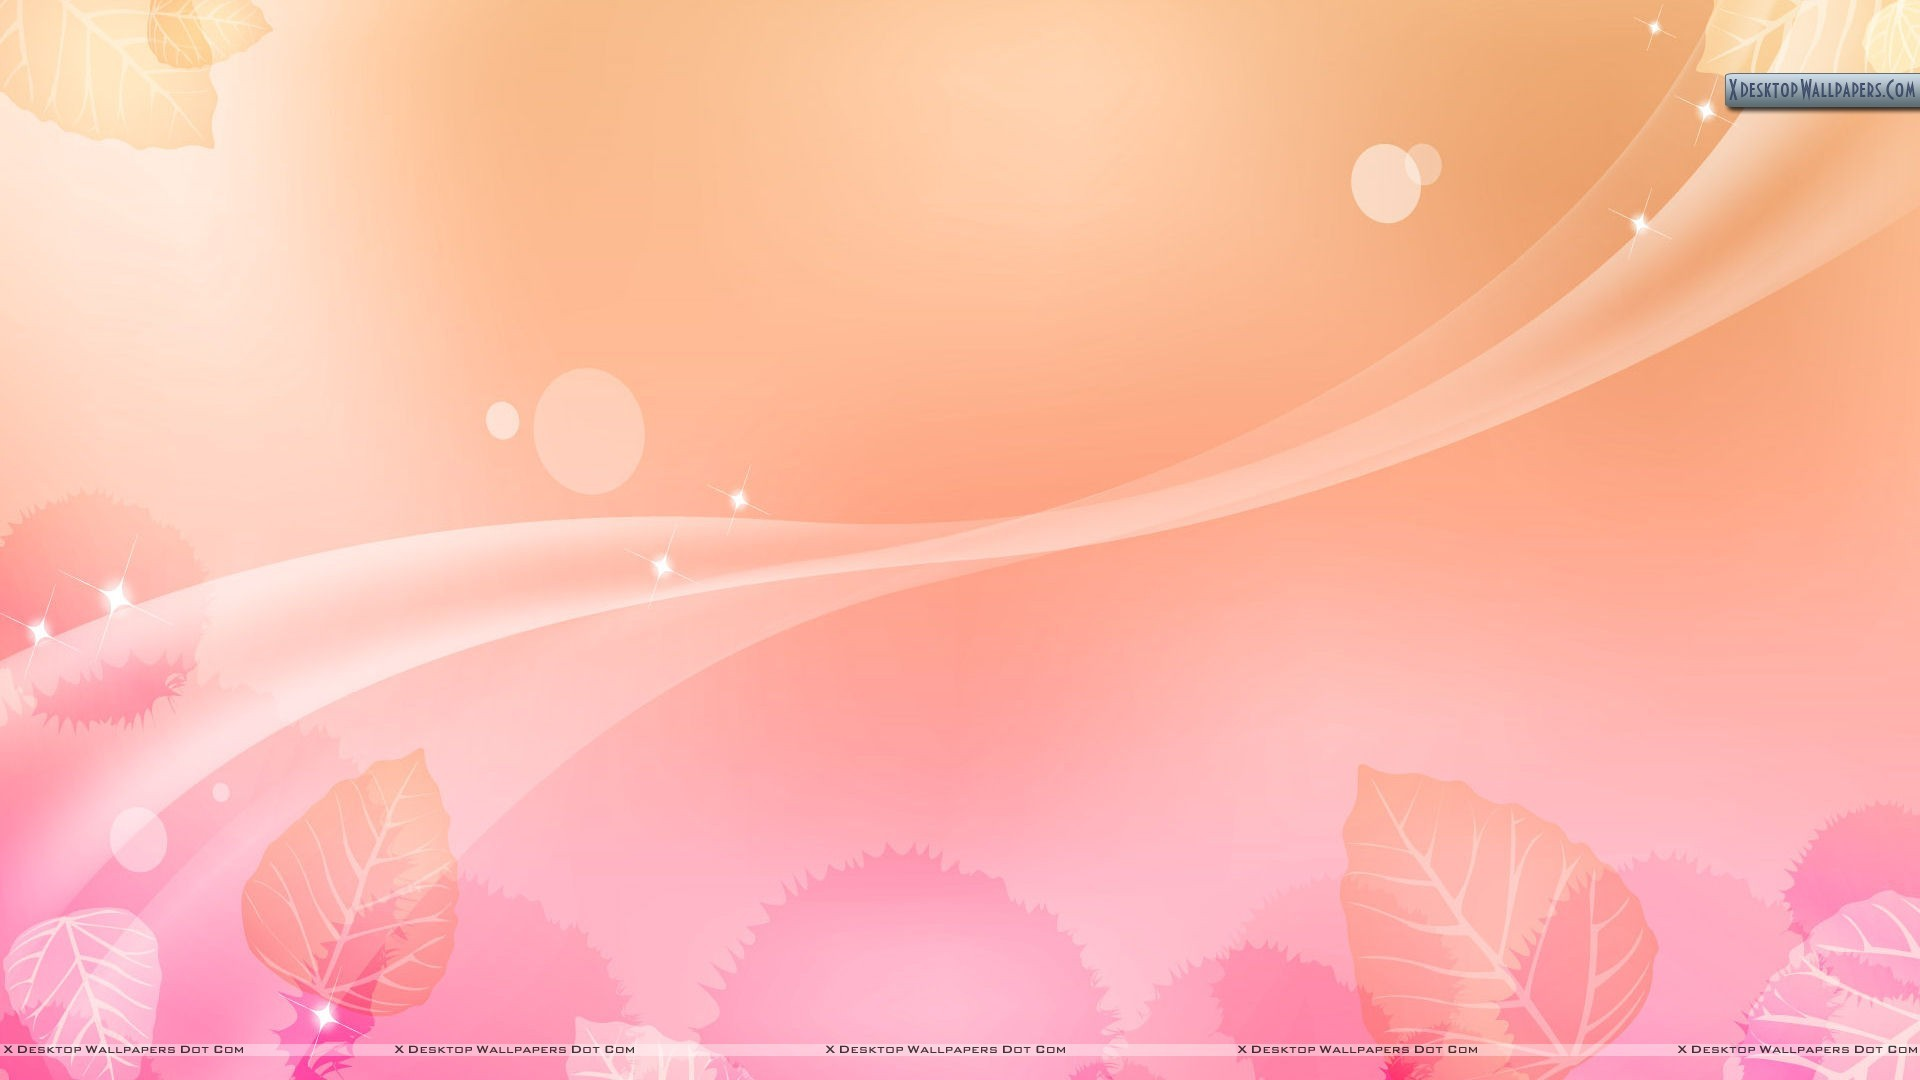 background, abstract, pink, flower, light, wallpapers, cool